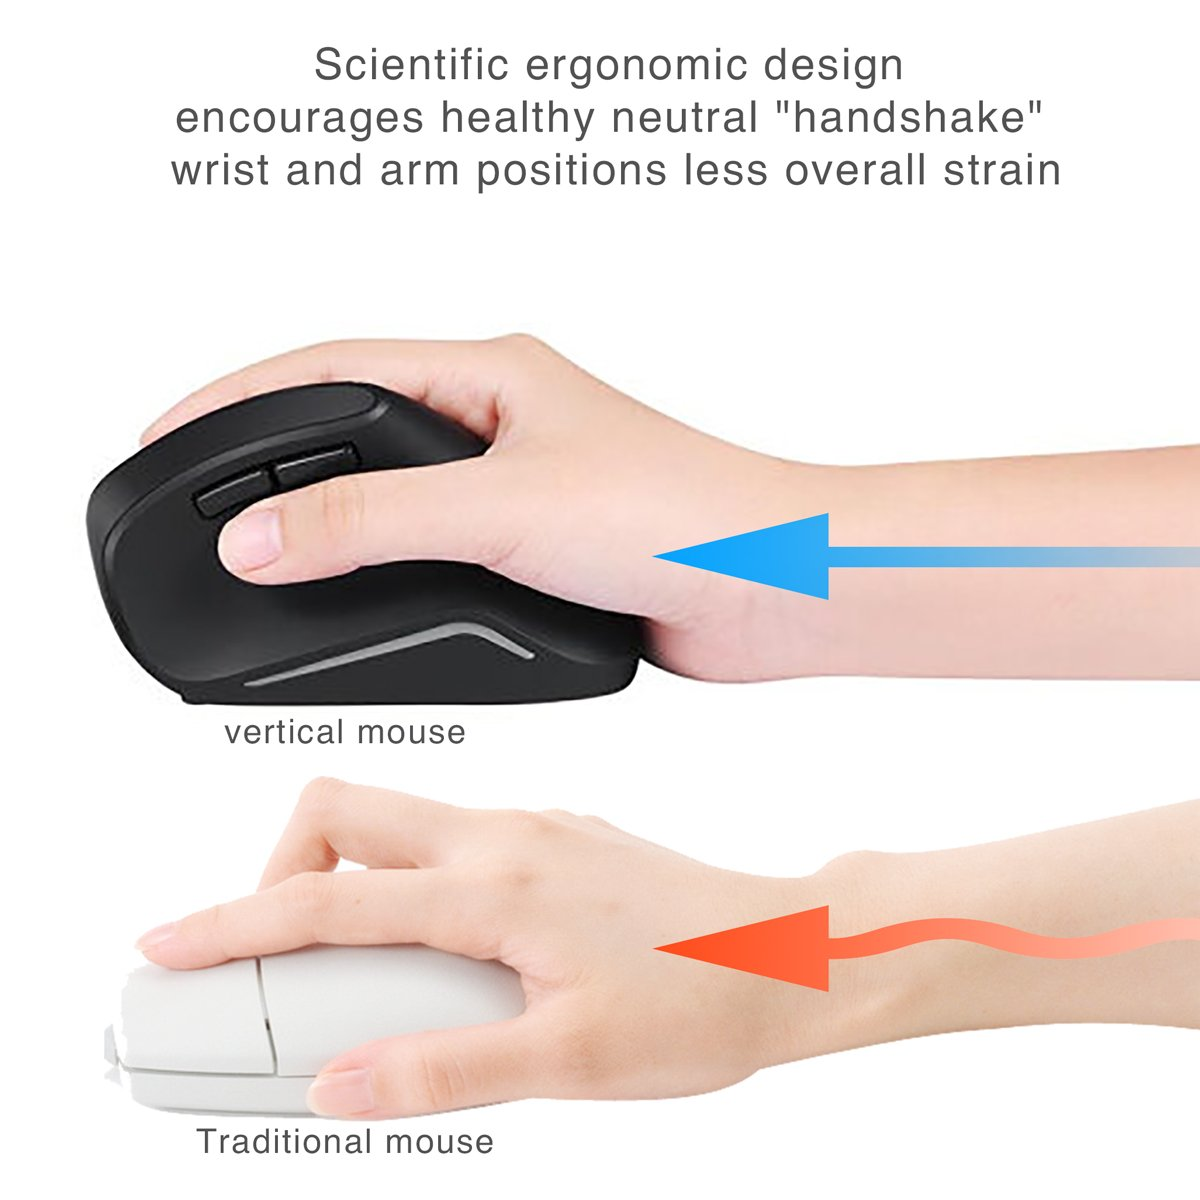 c42fd881066 EVM02 Wireless Vertical Ergonomic Mouse. EVM02 Wireless Vertical Ergonomic  Mouse, USB 2.4G, 3 Adjustable DPI Levels 800/1200/1600 and ...